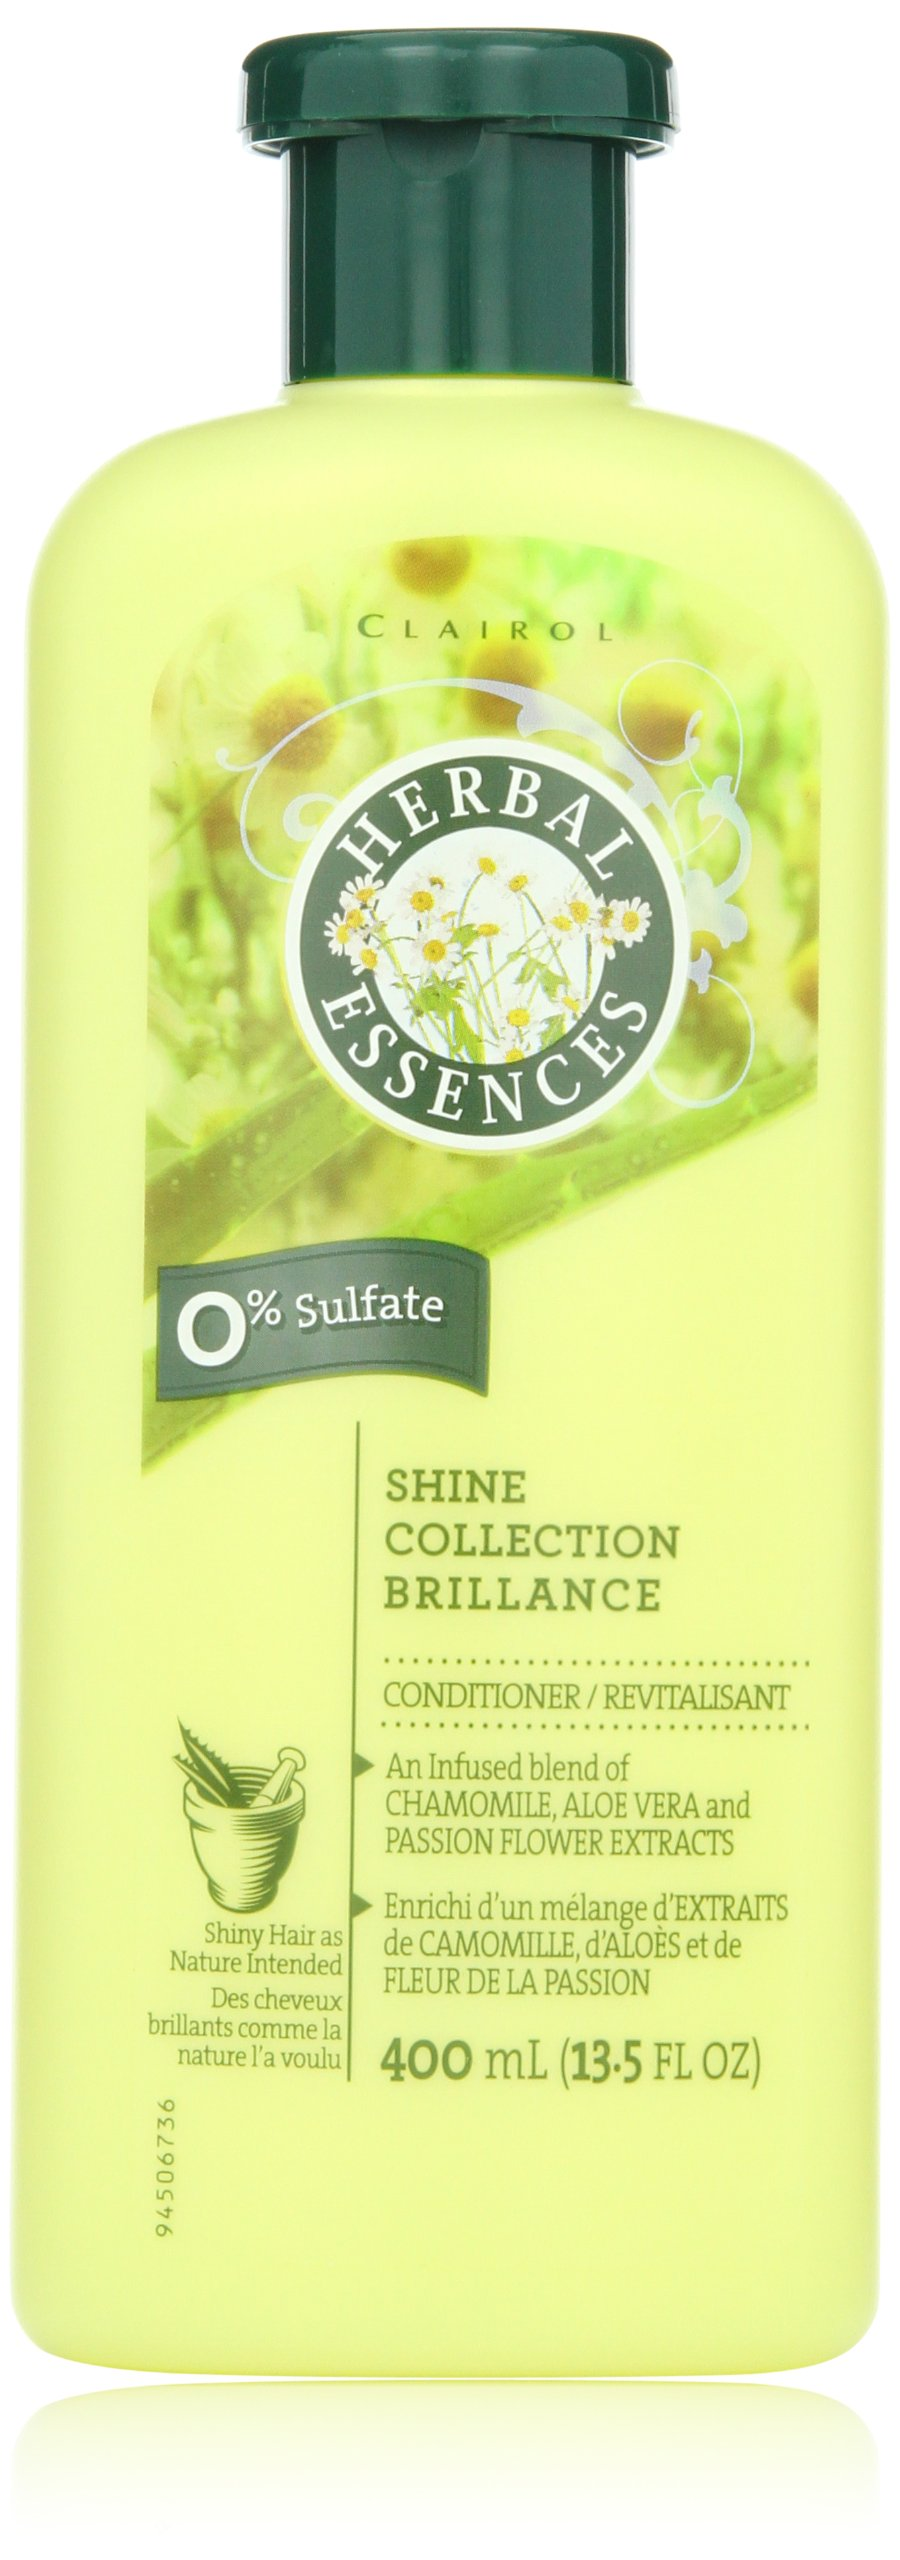 Herbal Essences Shine Collection Conditioner 13.5 Fl Oz by Herbal Essences (Image #1)